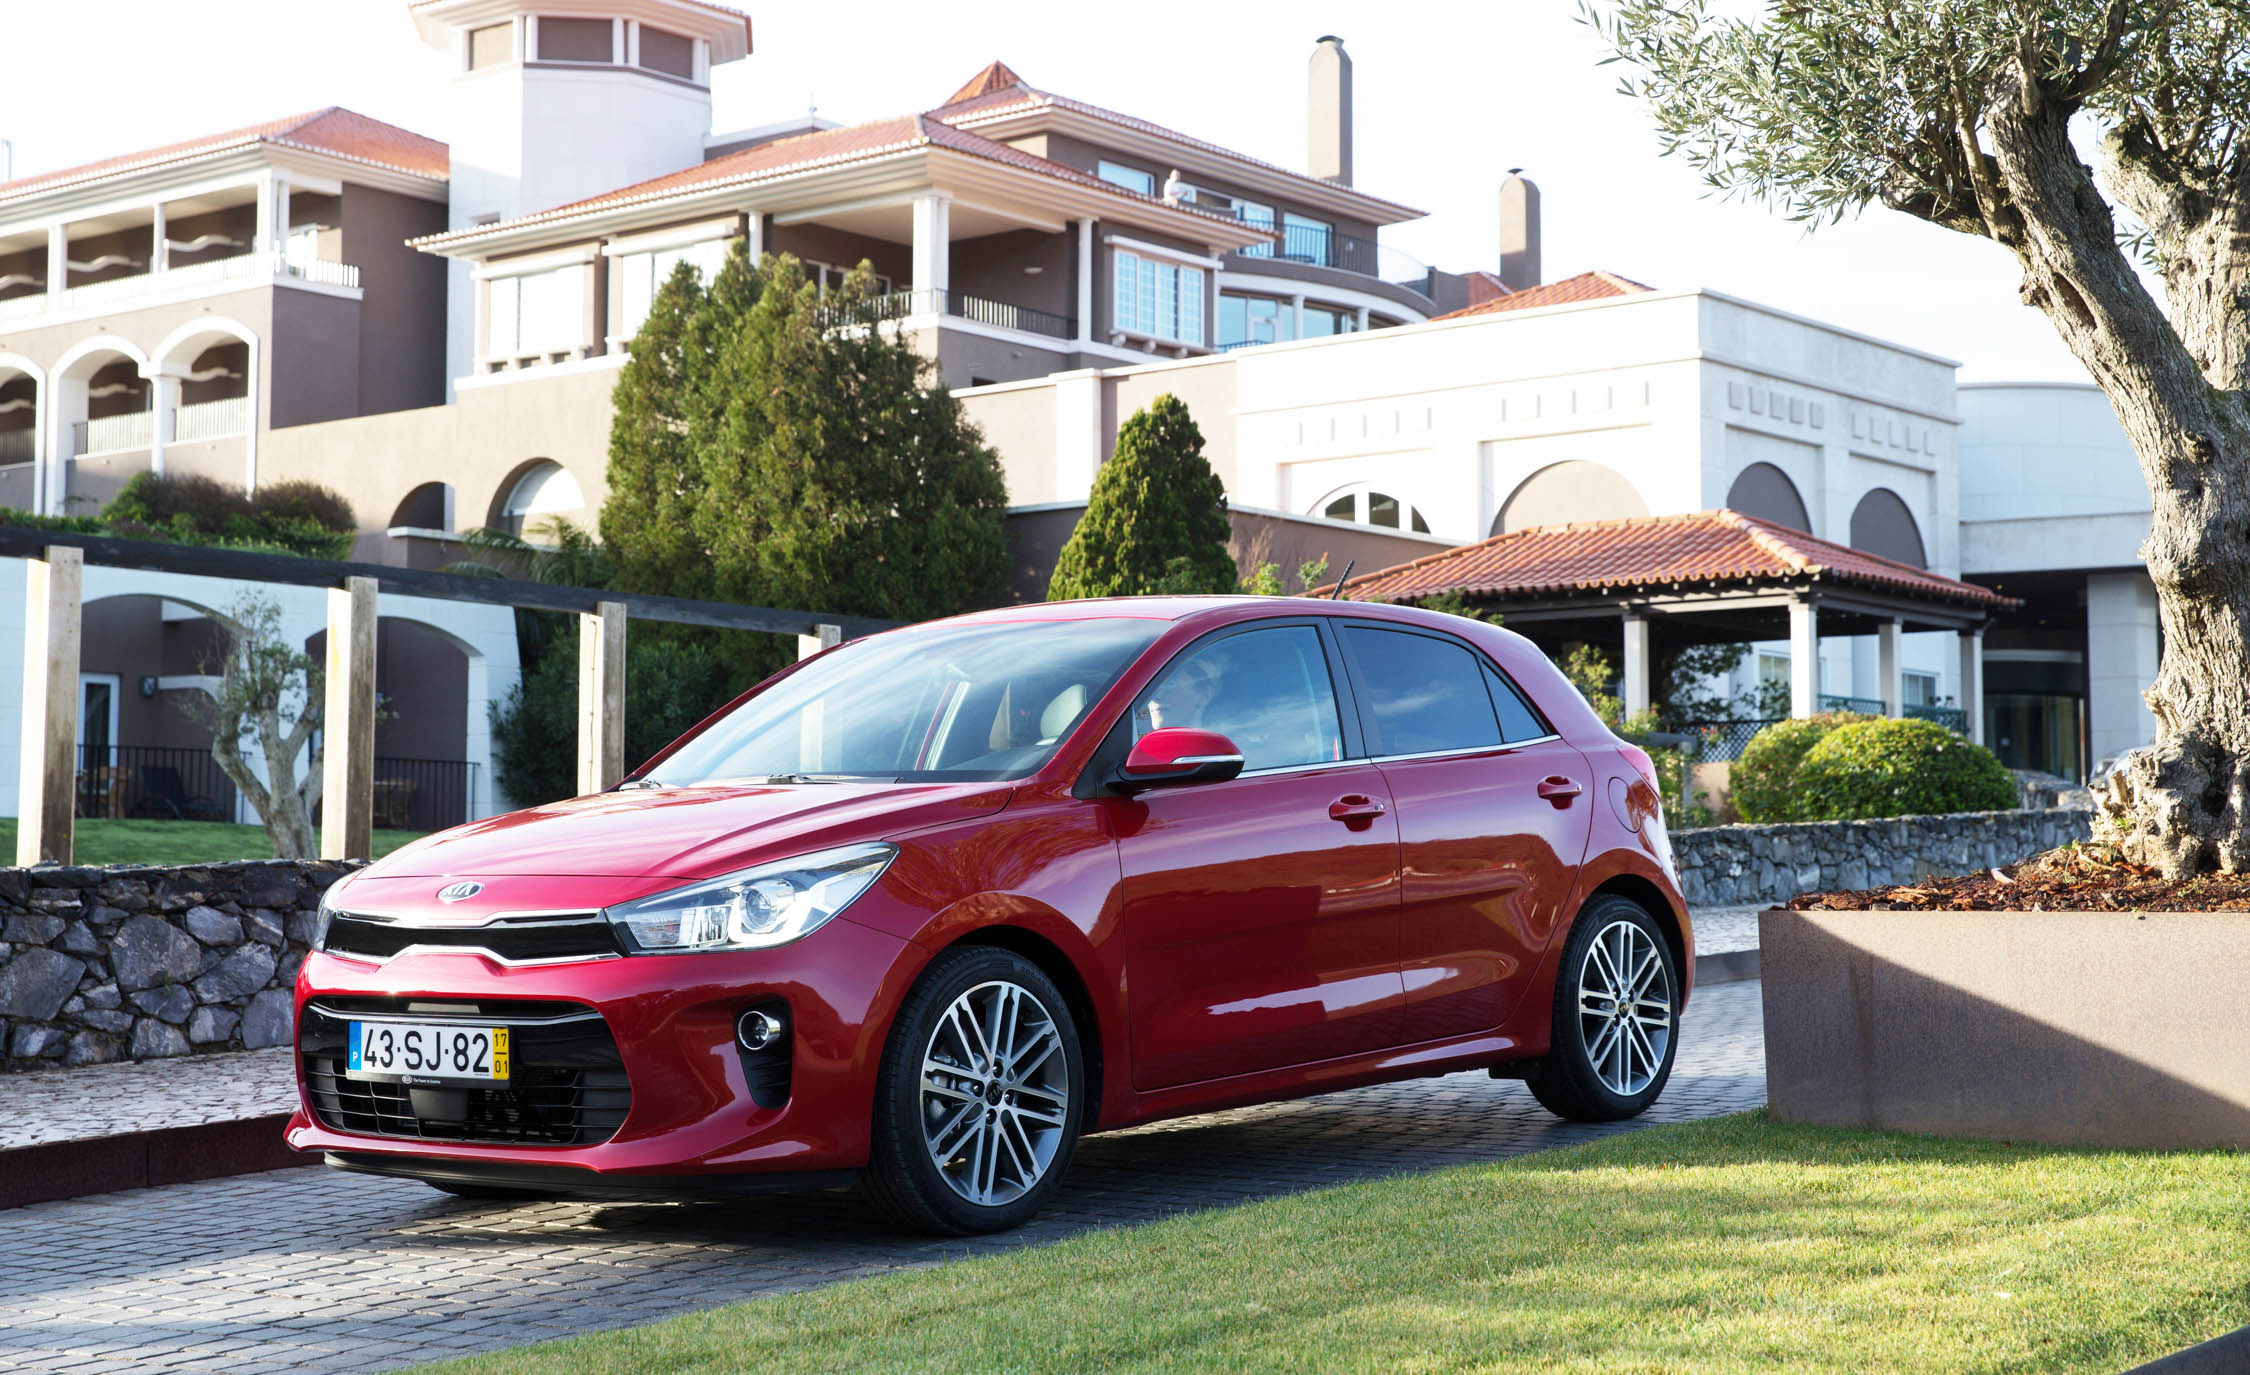 2018 Kia Rio Hatchback Red Exterior (View 11 of 49)